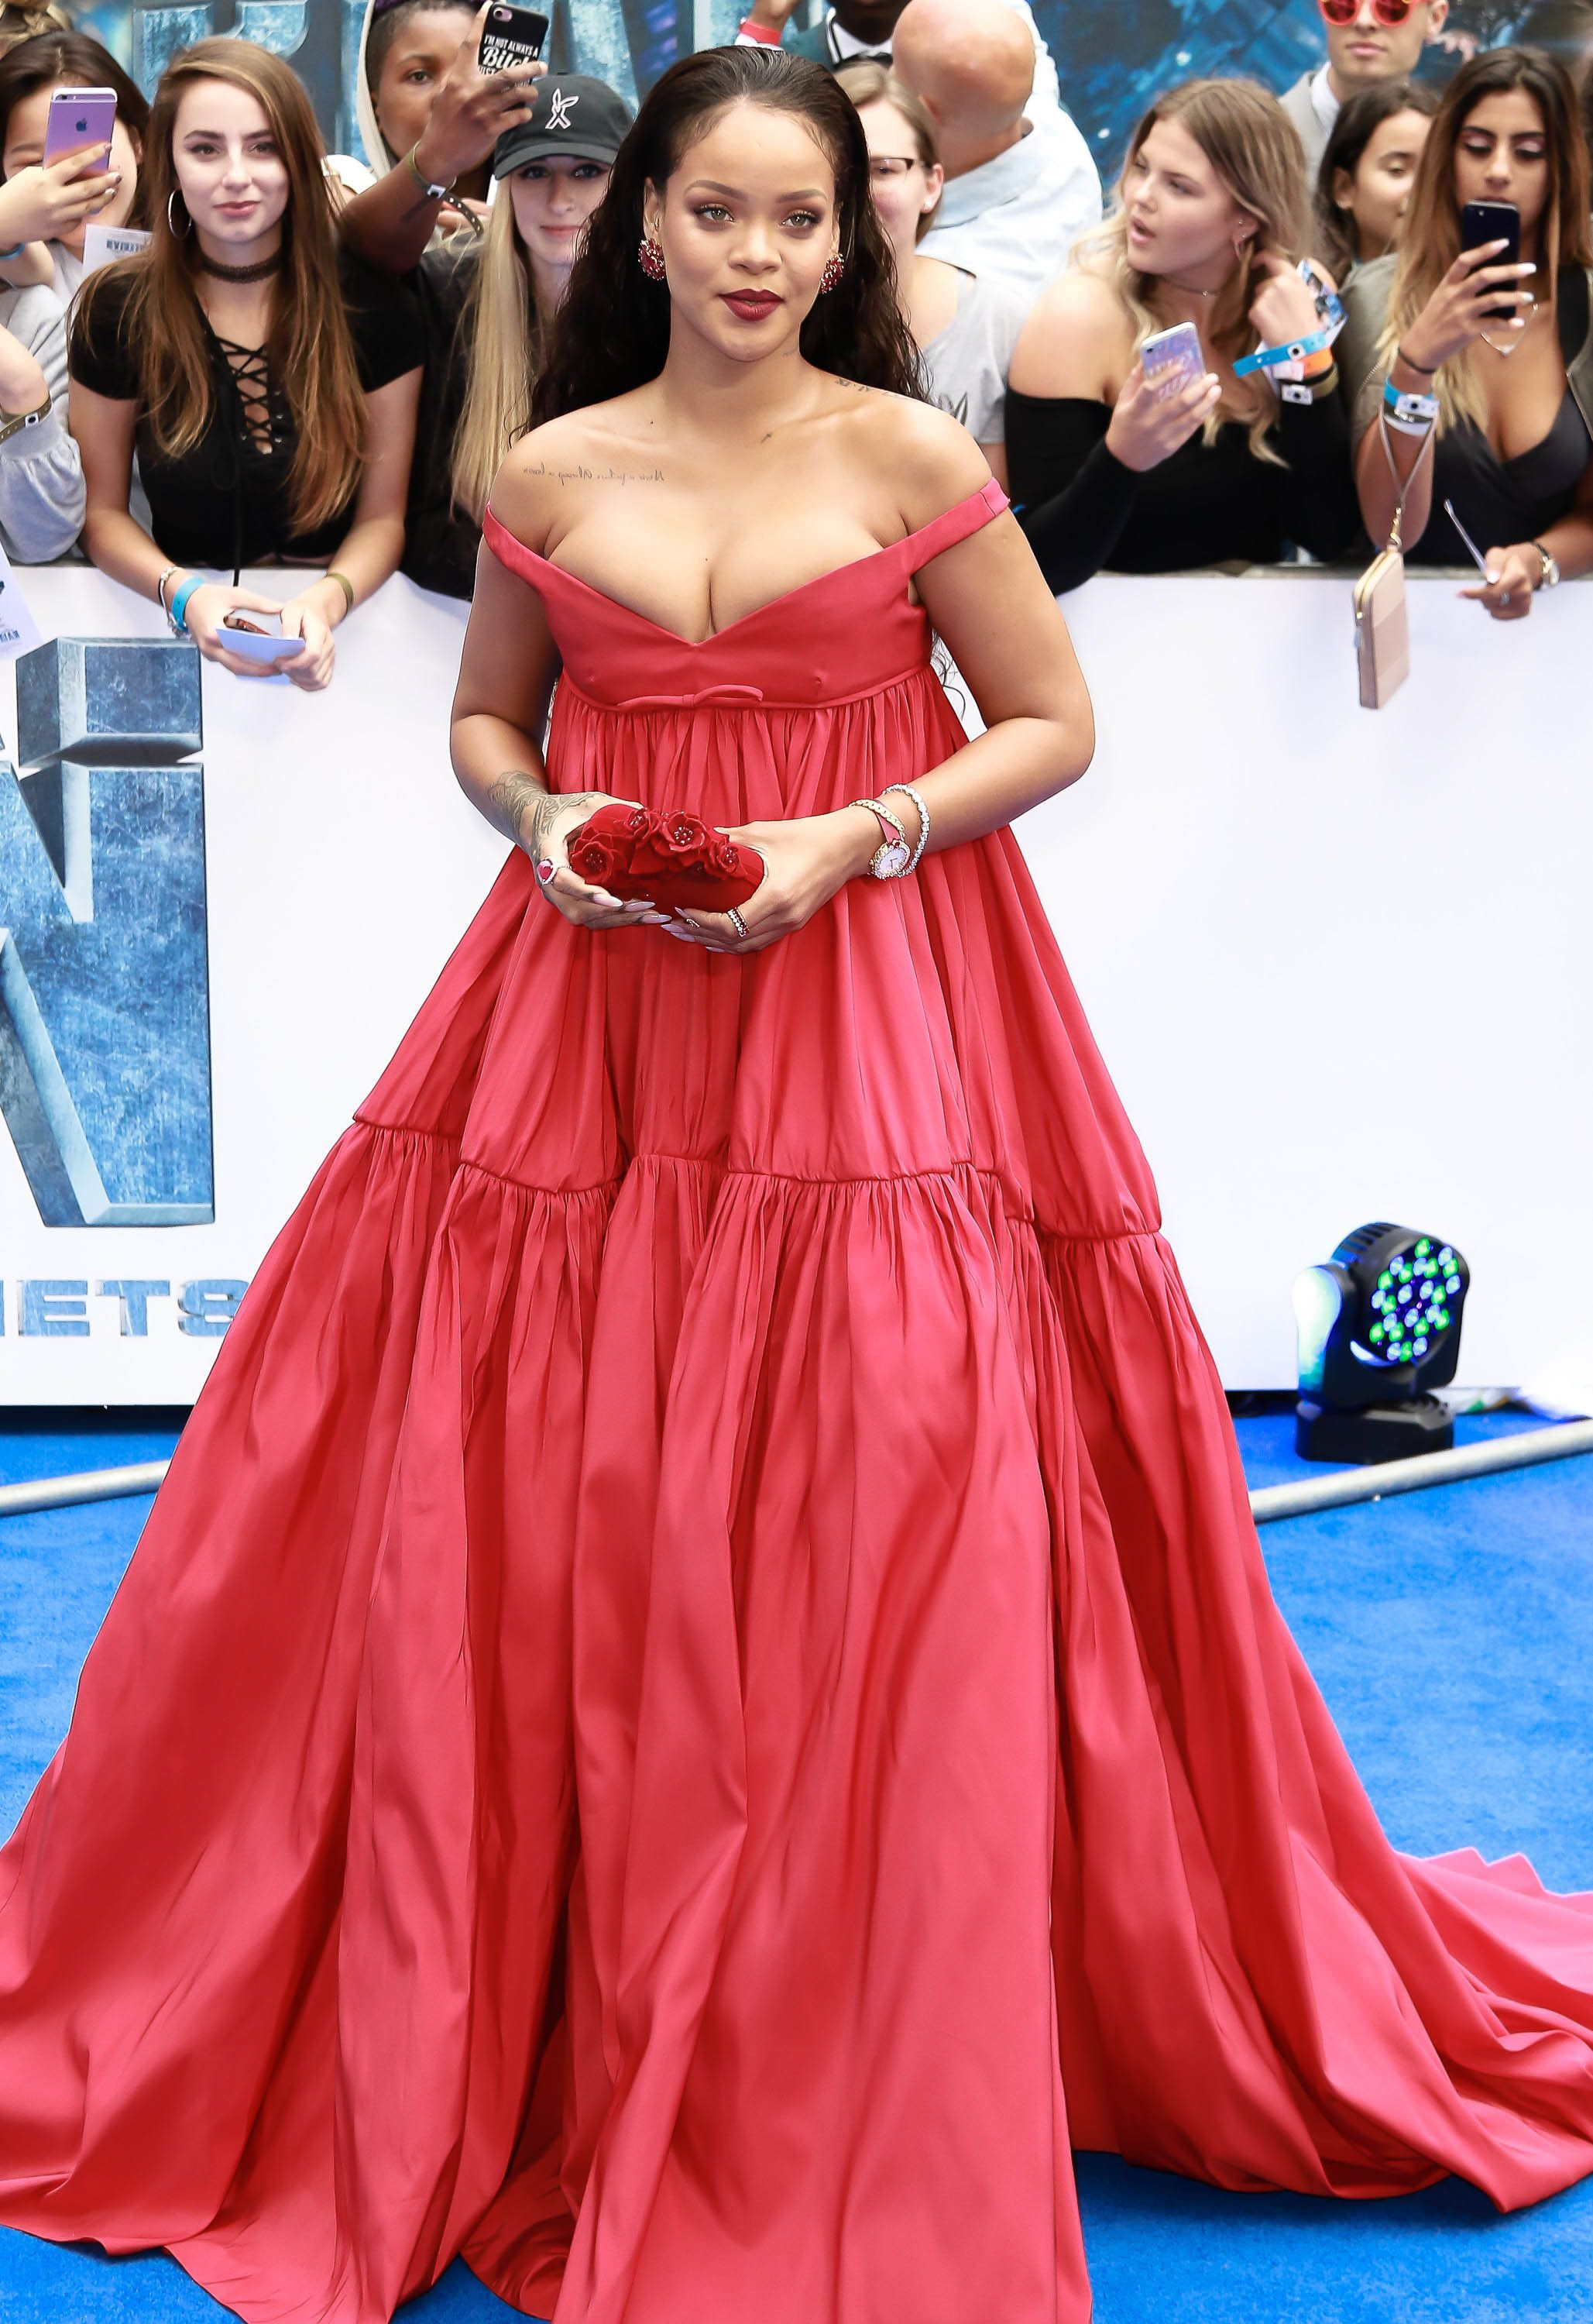 Rihanna rocks a stunning red dress at the premiere of<i> Valerian and the City of A Thousand Planets</i>